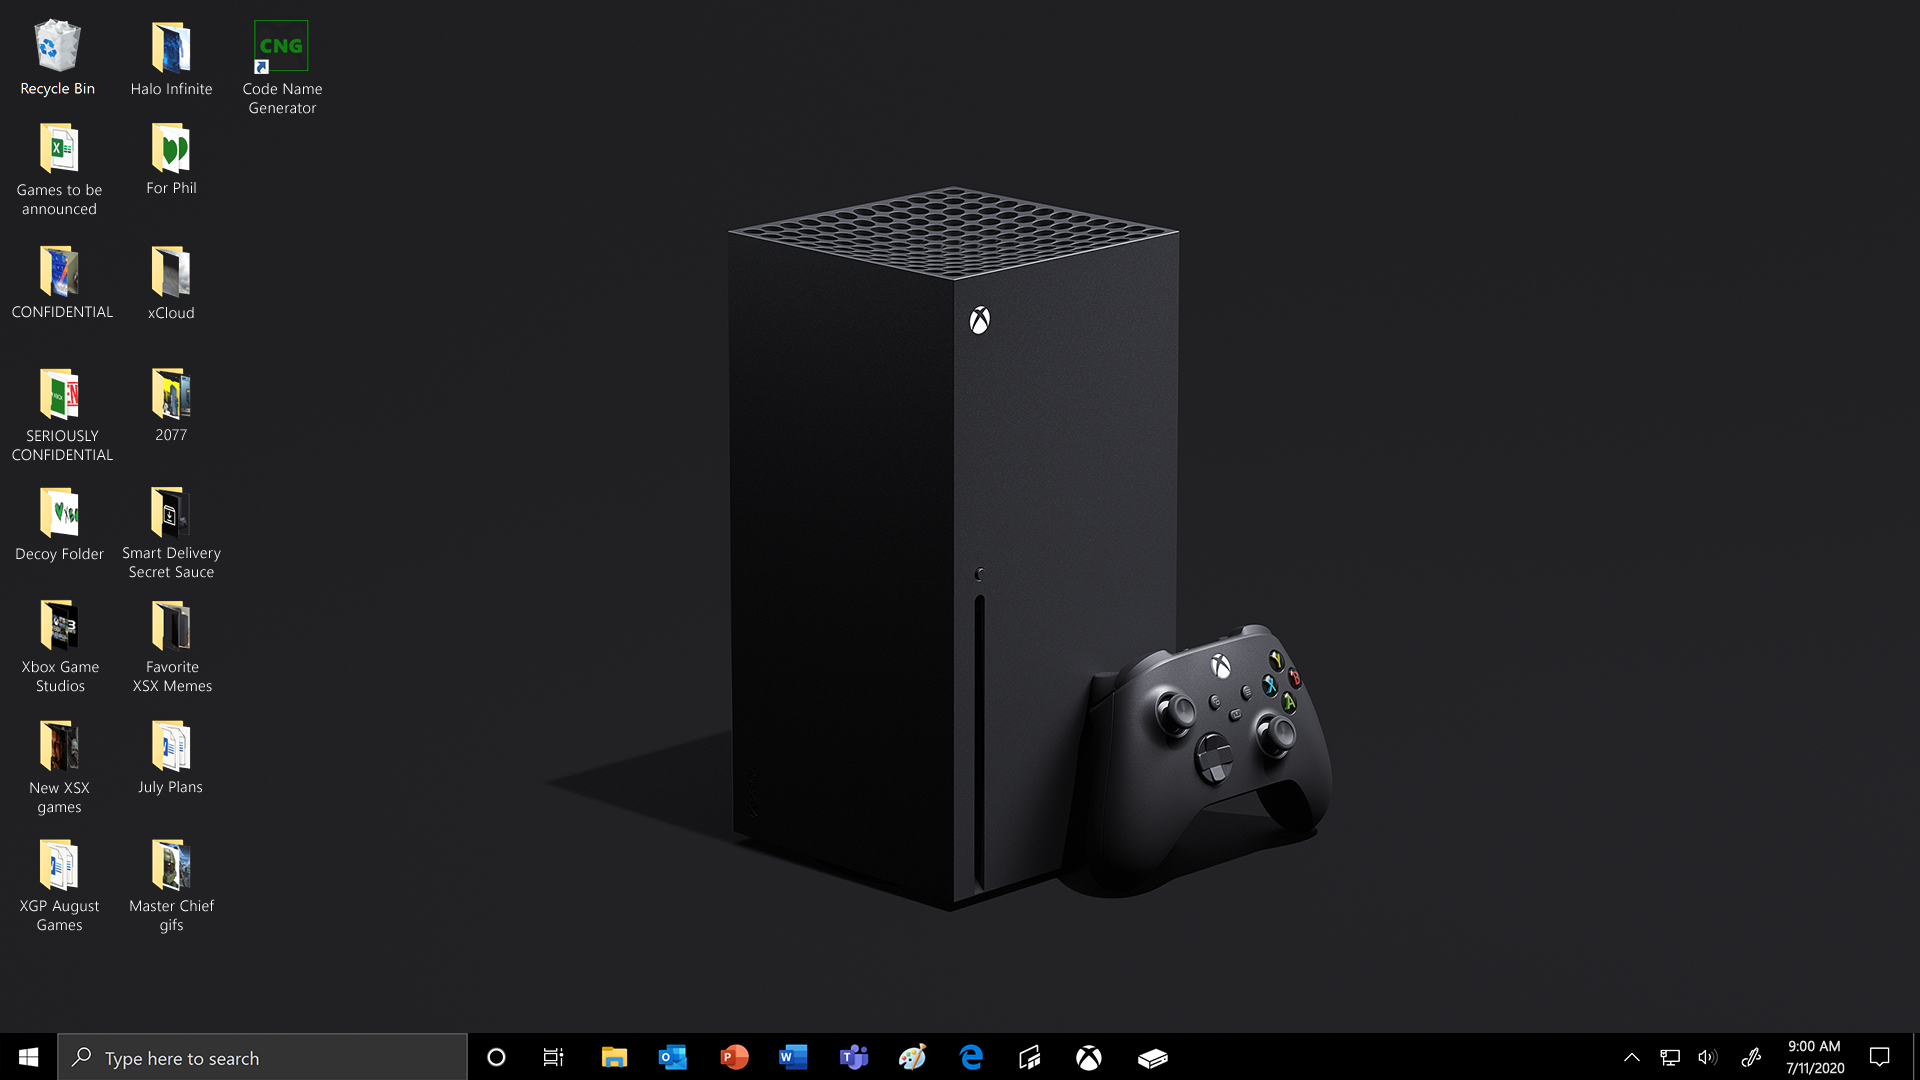 A Windows 10 Desktop with an Xbox Series X console and controller as the background image. Files and folders on the desktop are jokes and nods referencing the console and Xbox in general.